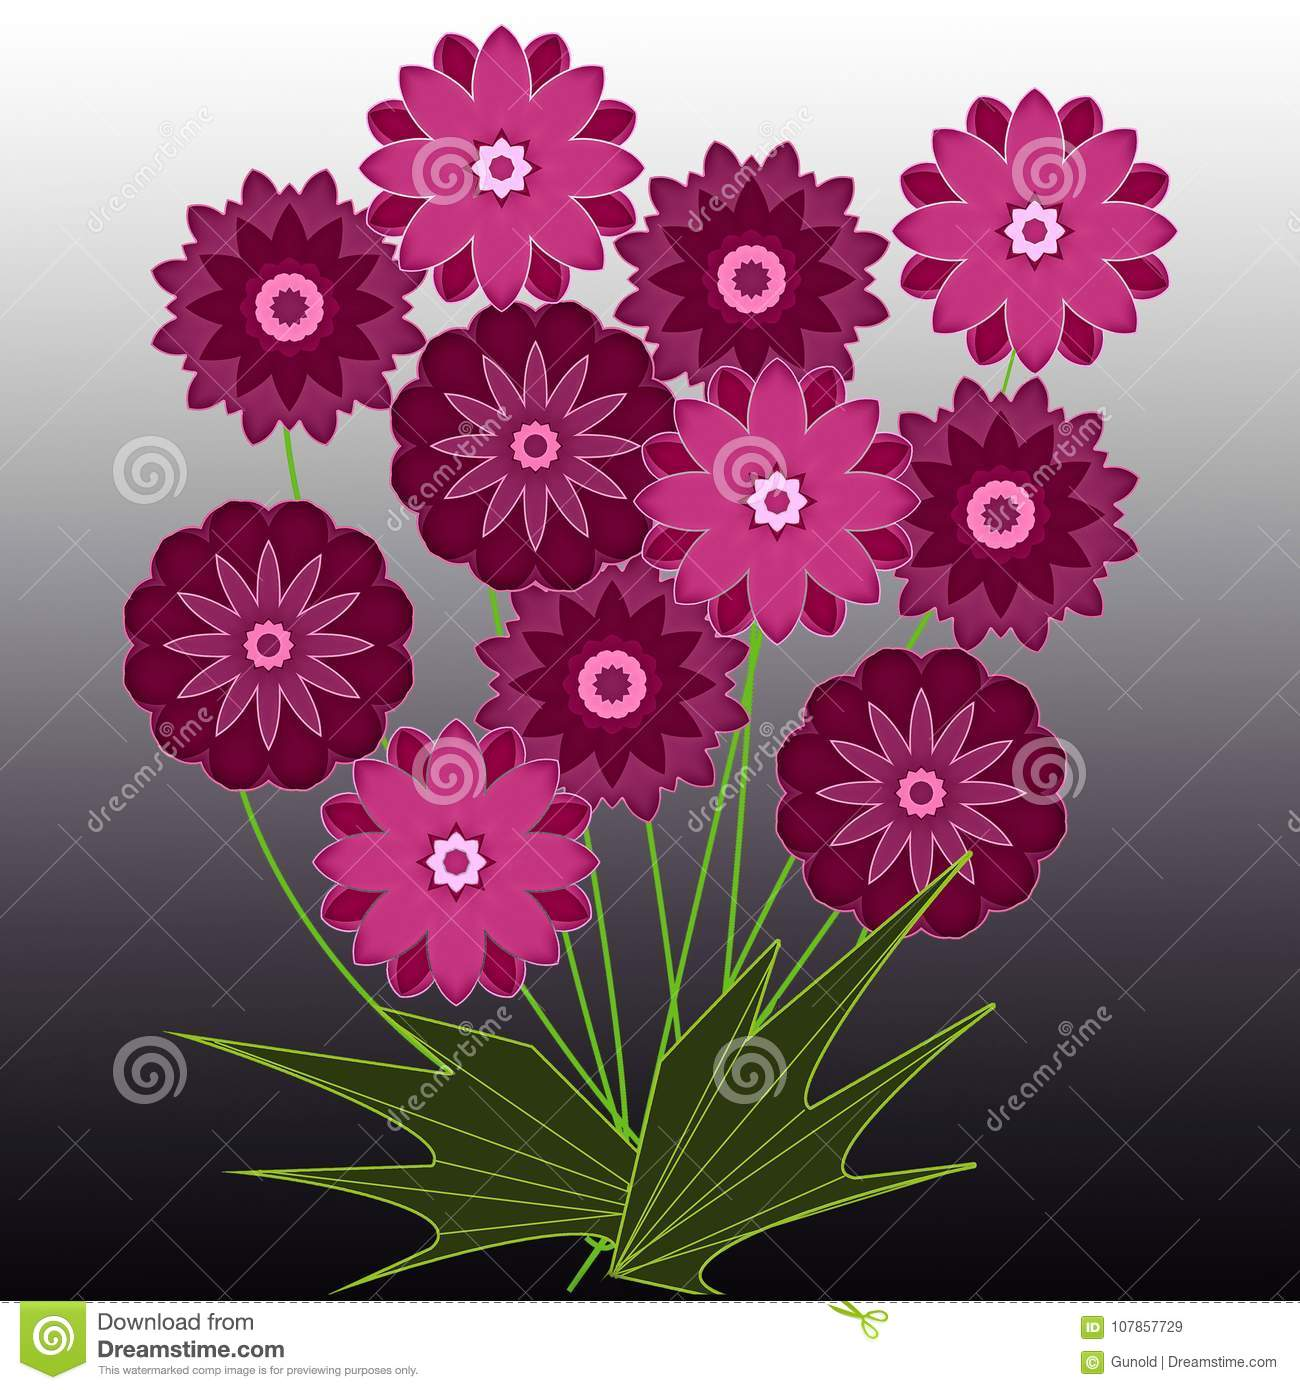 Greetings Card With Bouquet Of Pink Summer Flowers Stock